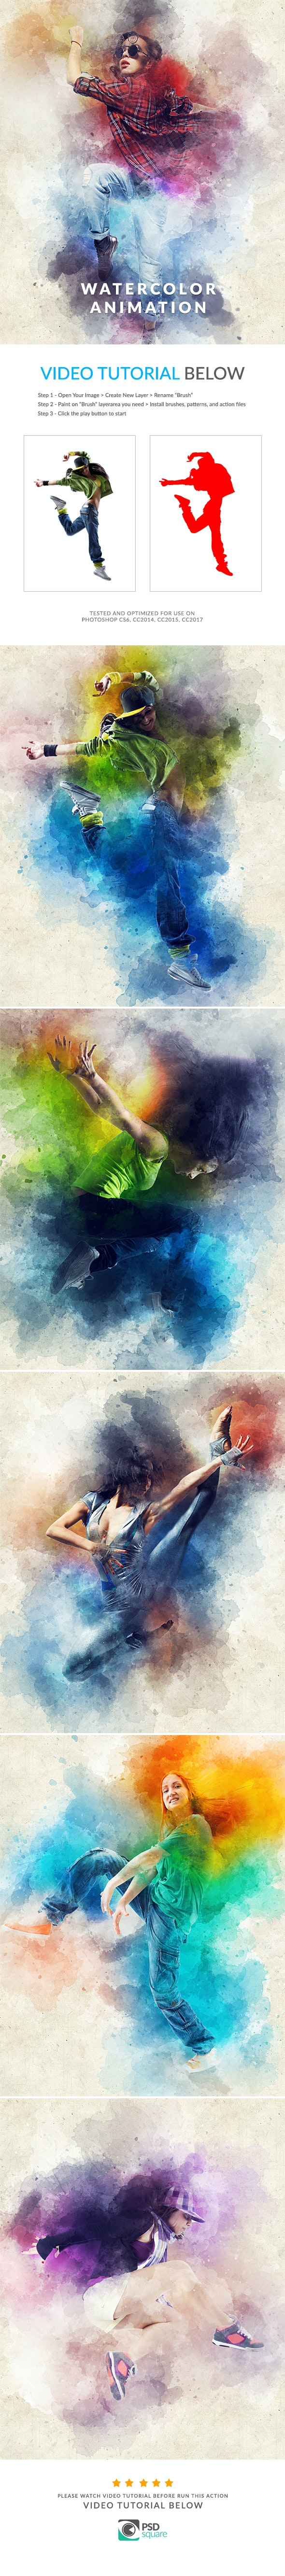 Watercolor Animation Photoshop Action by PSDSquare